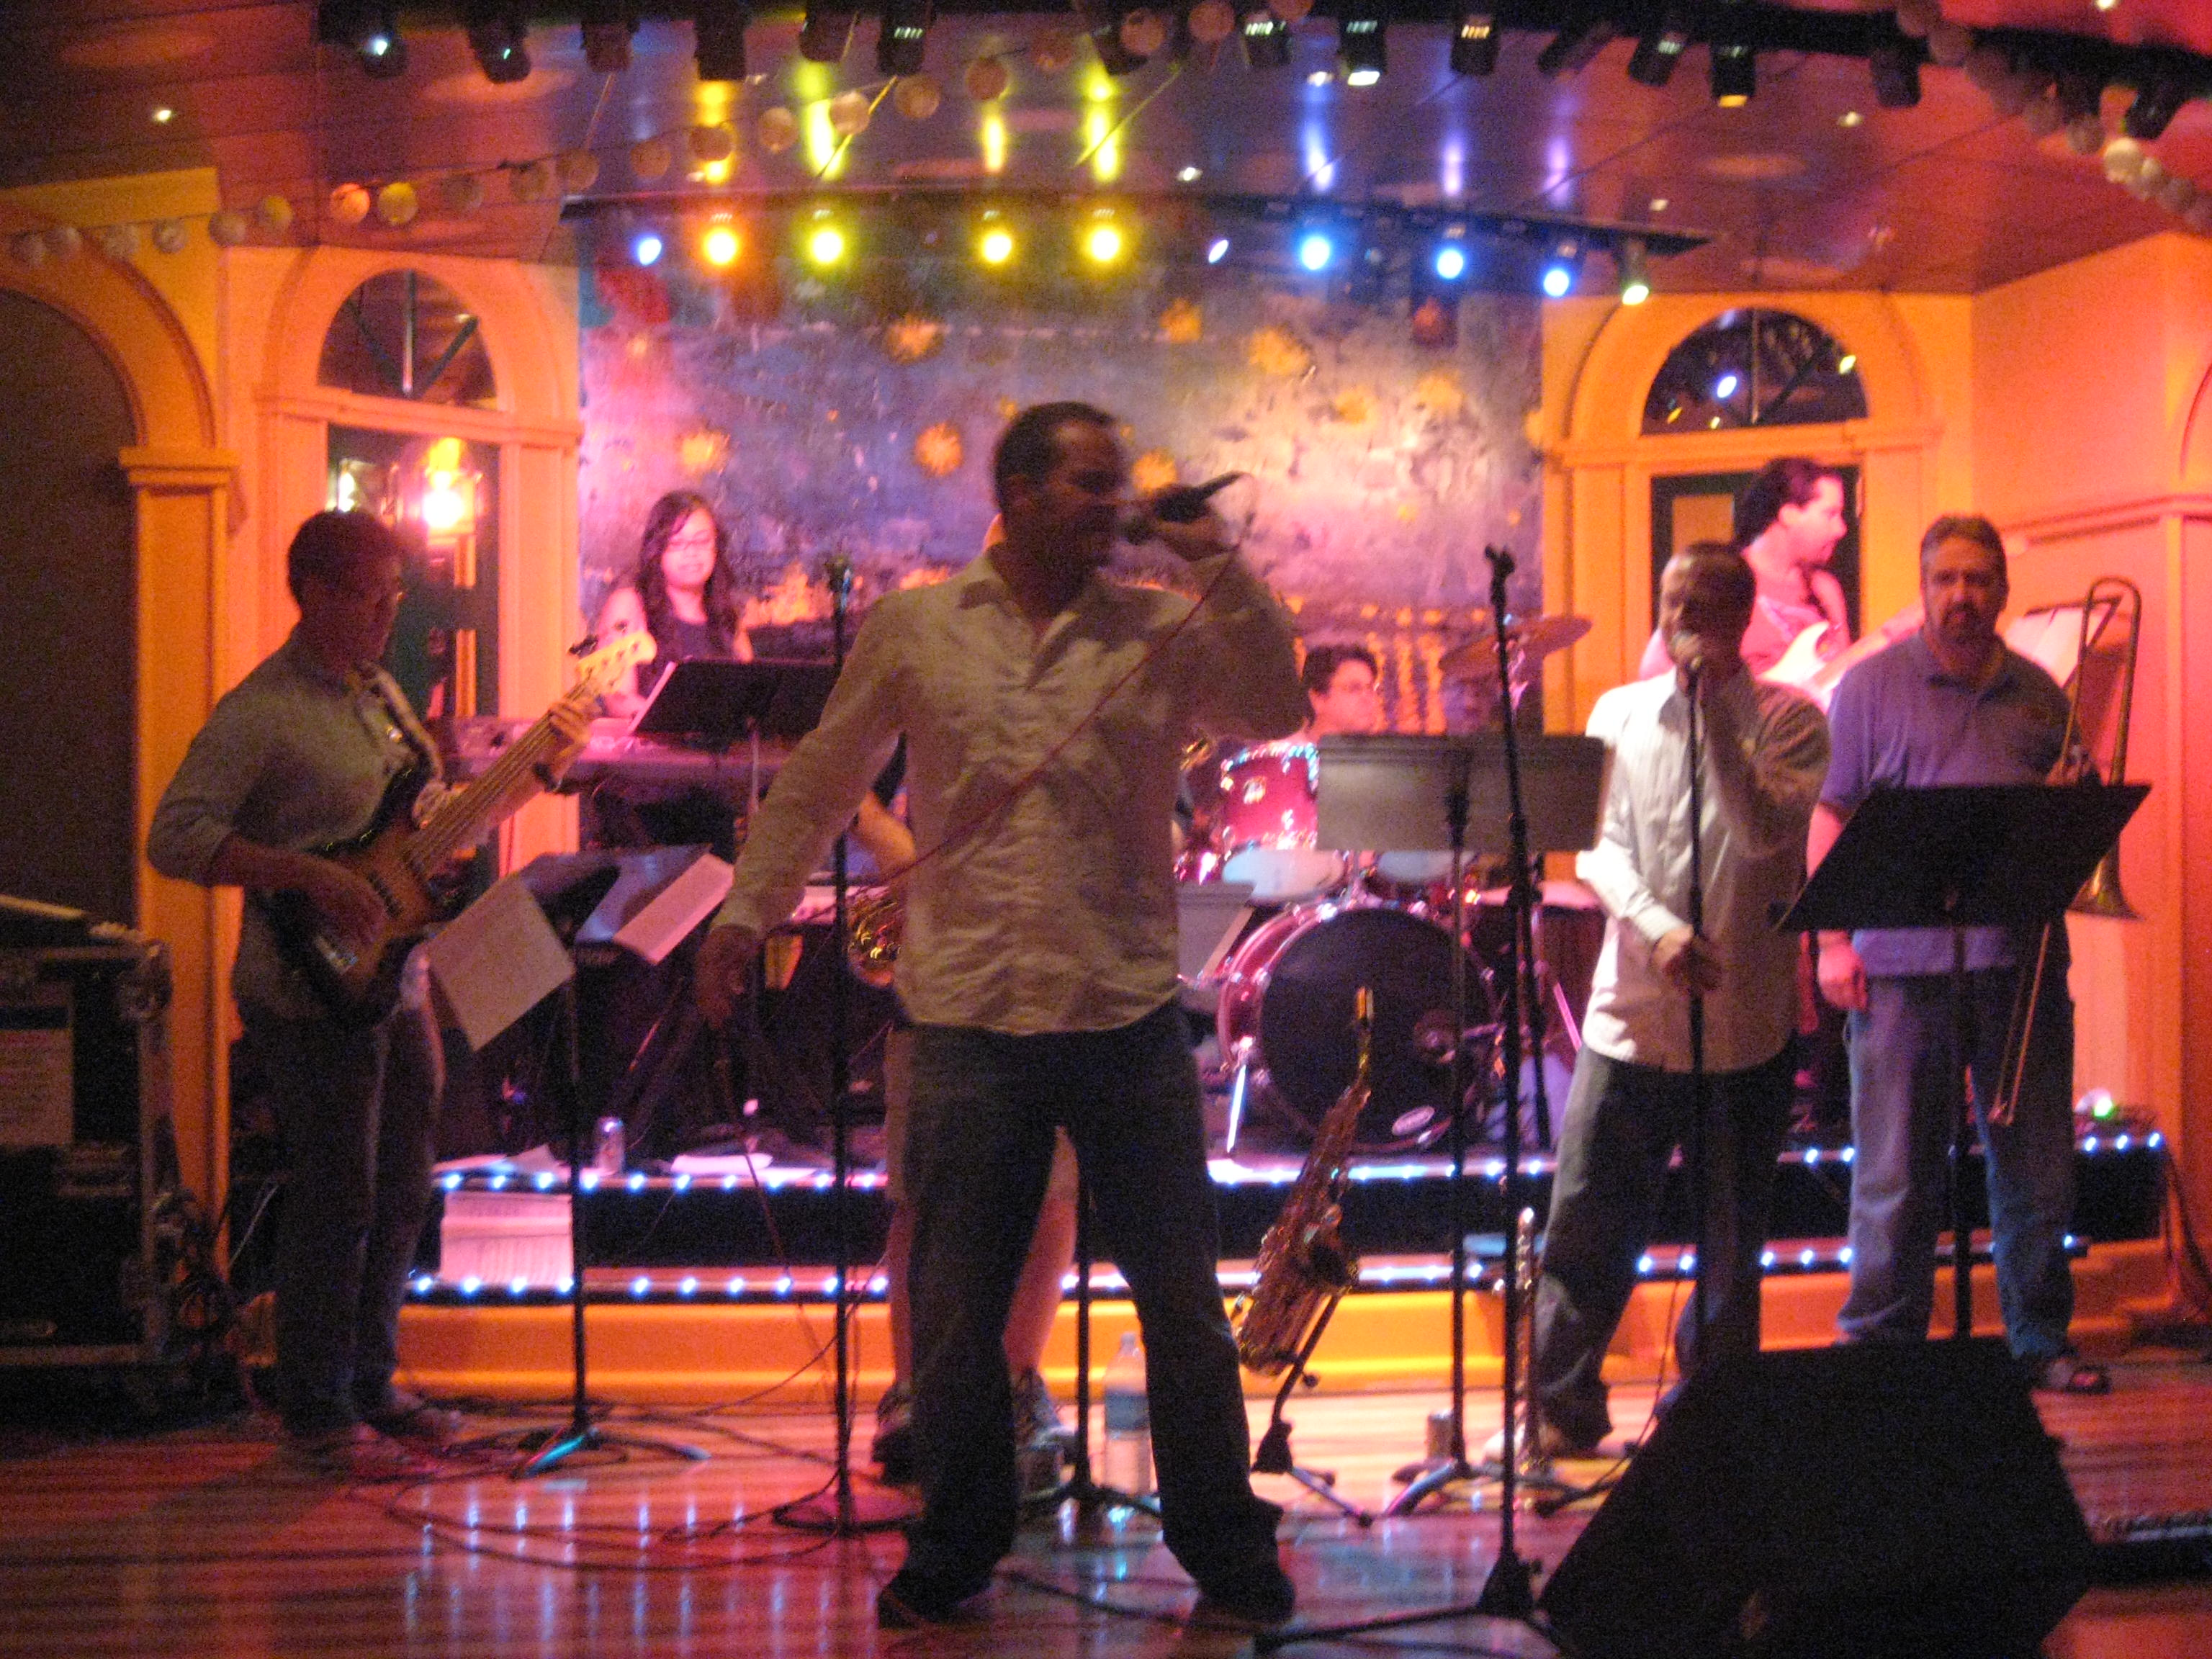 scott-performing-with-the-showband-during-one-of-our-crew-activities-during-the-repositioning